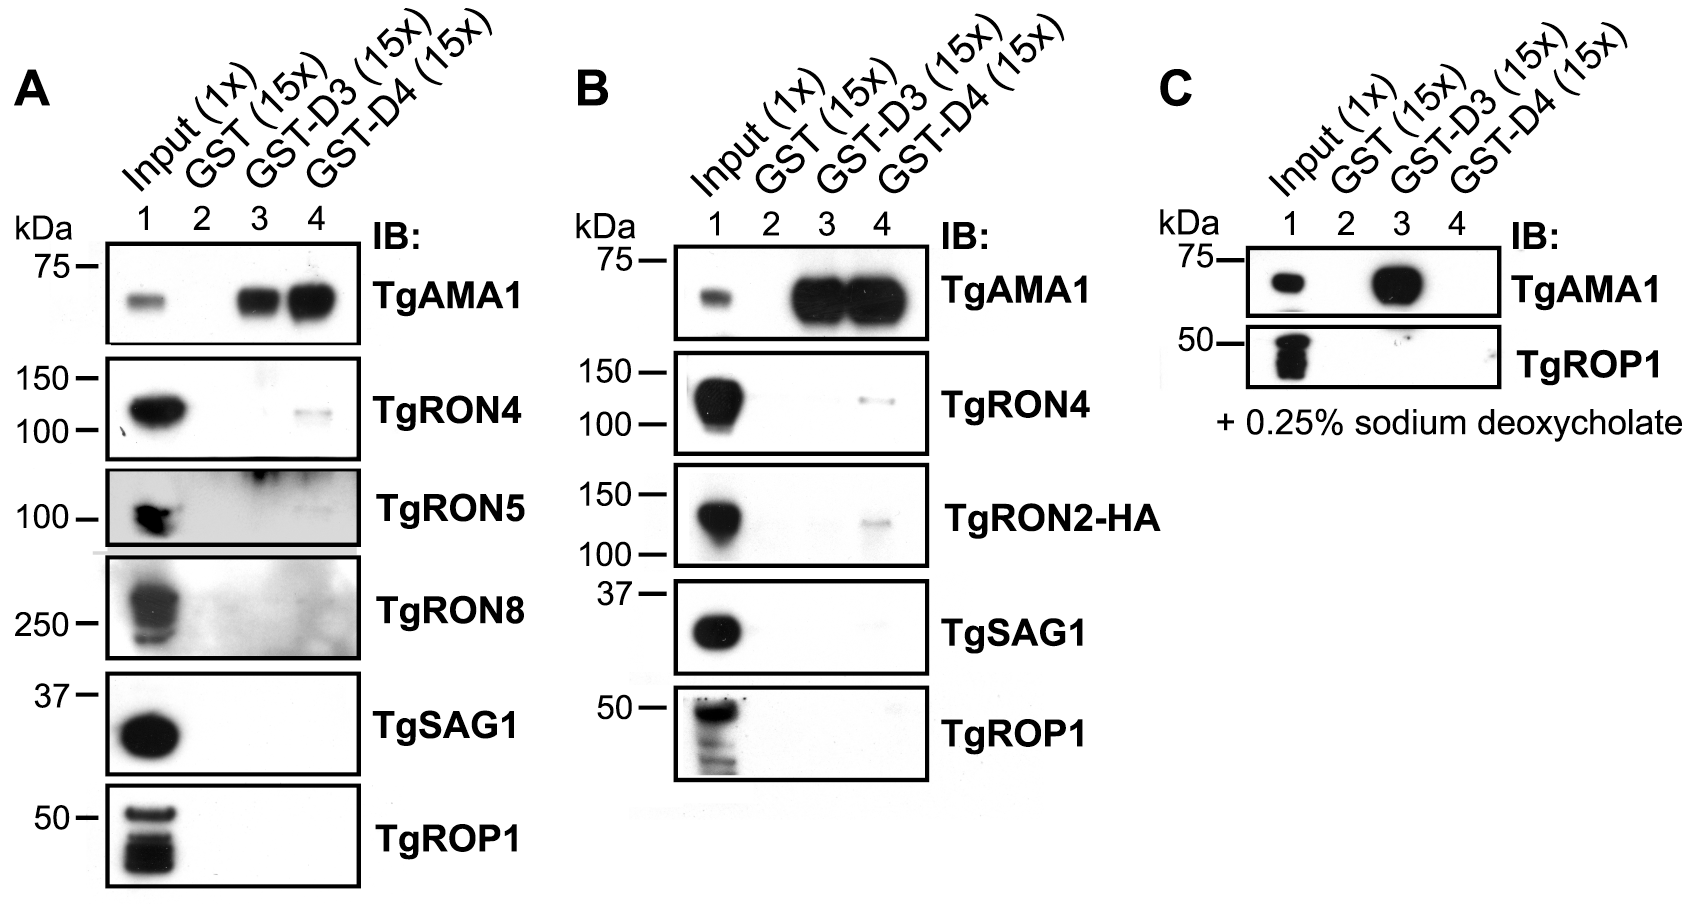 TgRON2 fusions GST-D3 and GST-D4 independently and specifically interact with TgAMA1 from parasite lysates.